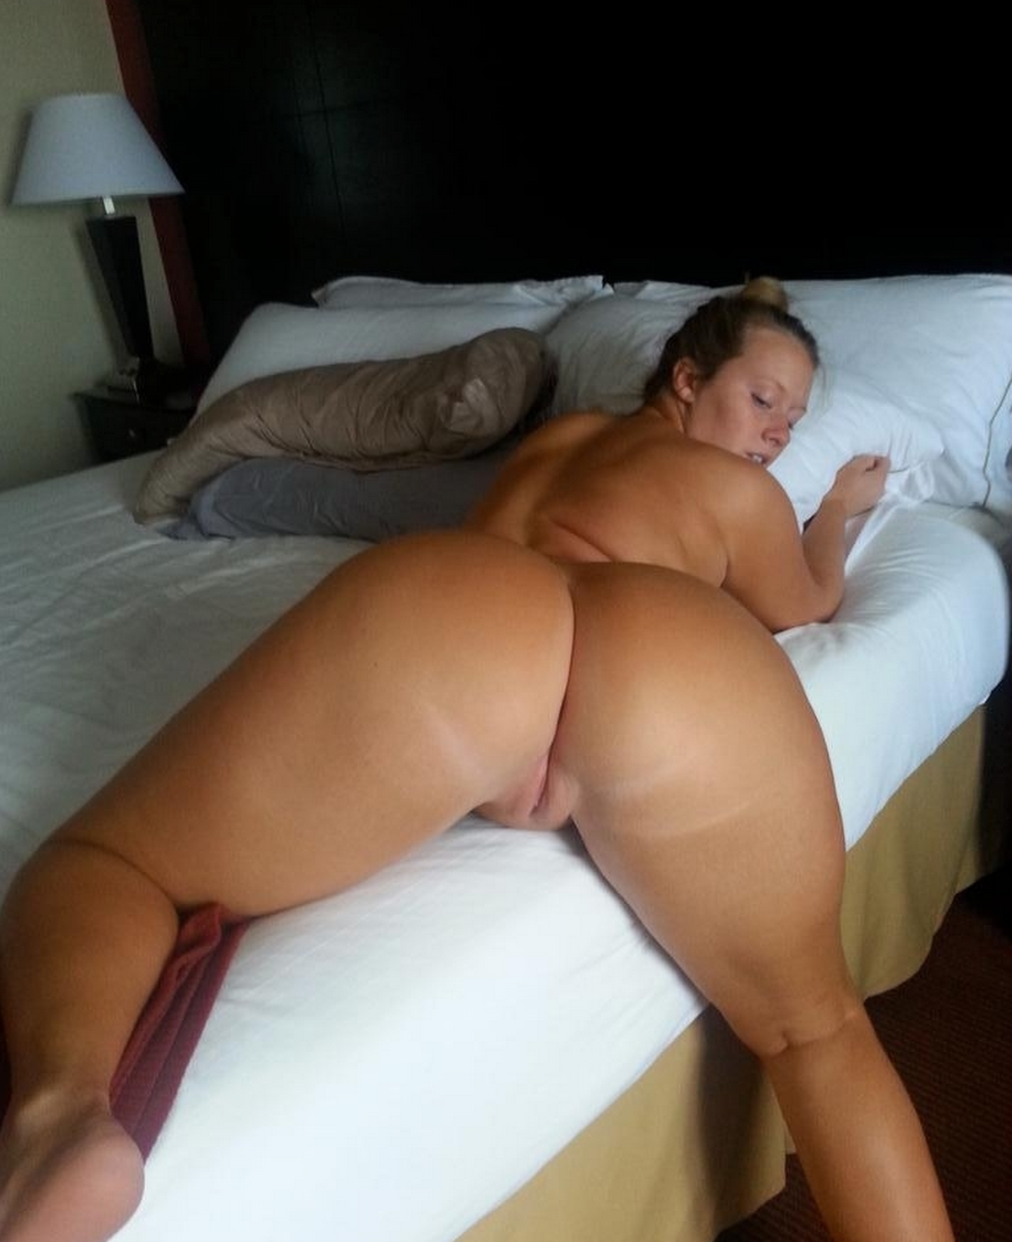 phat ass white girls xxx - pornm movies - large sex archive 2018